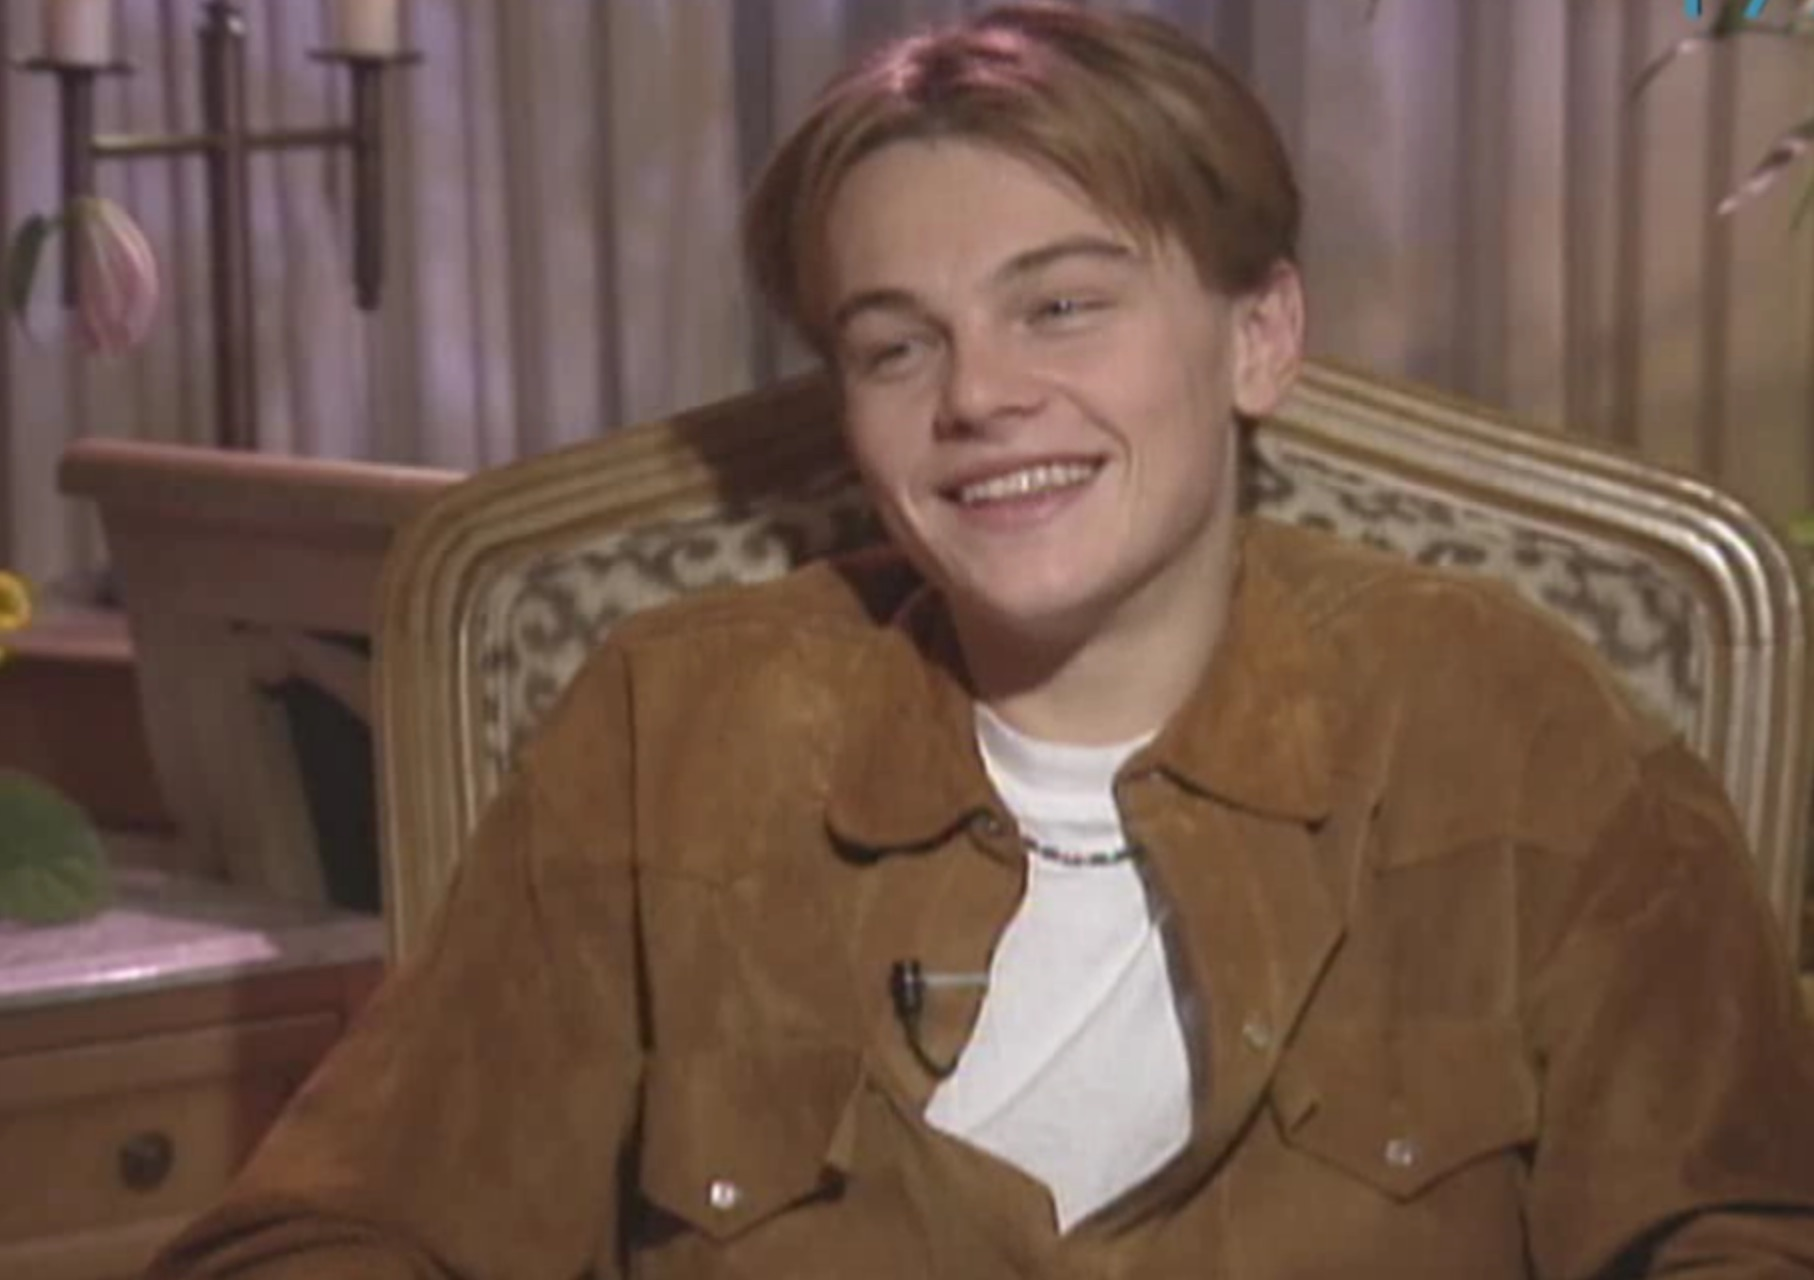 Watch 19-year-old Leonardo DiCaprio talk about being a heartthrob